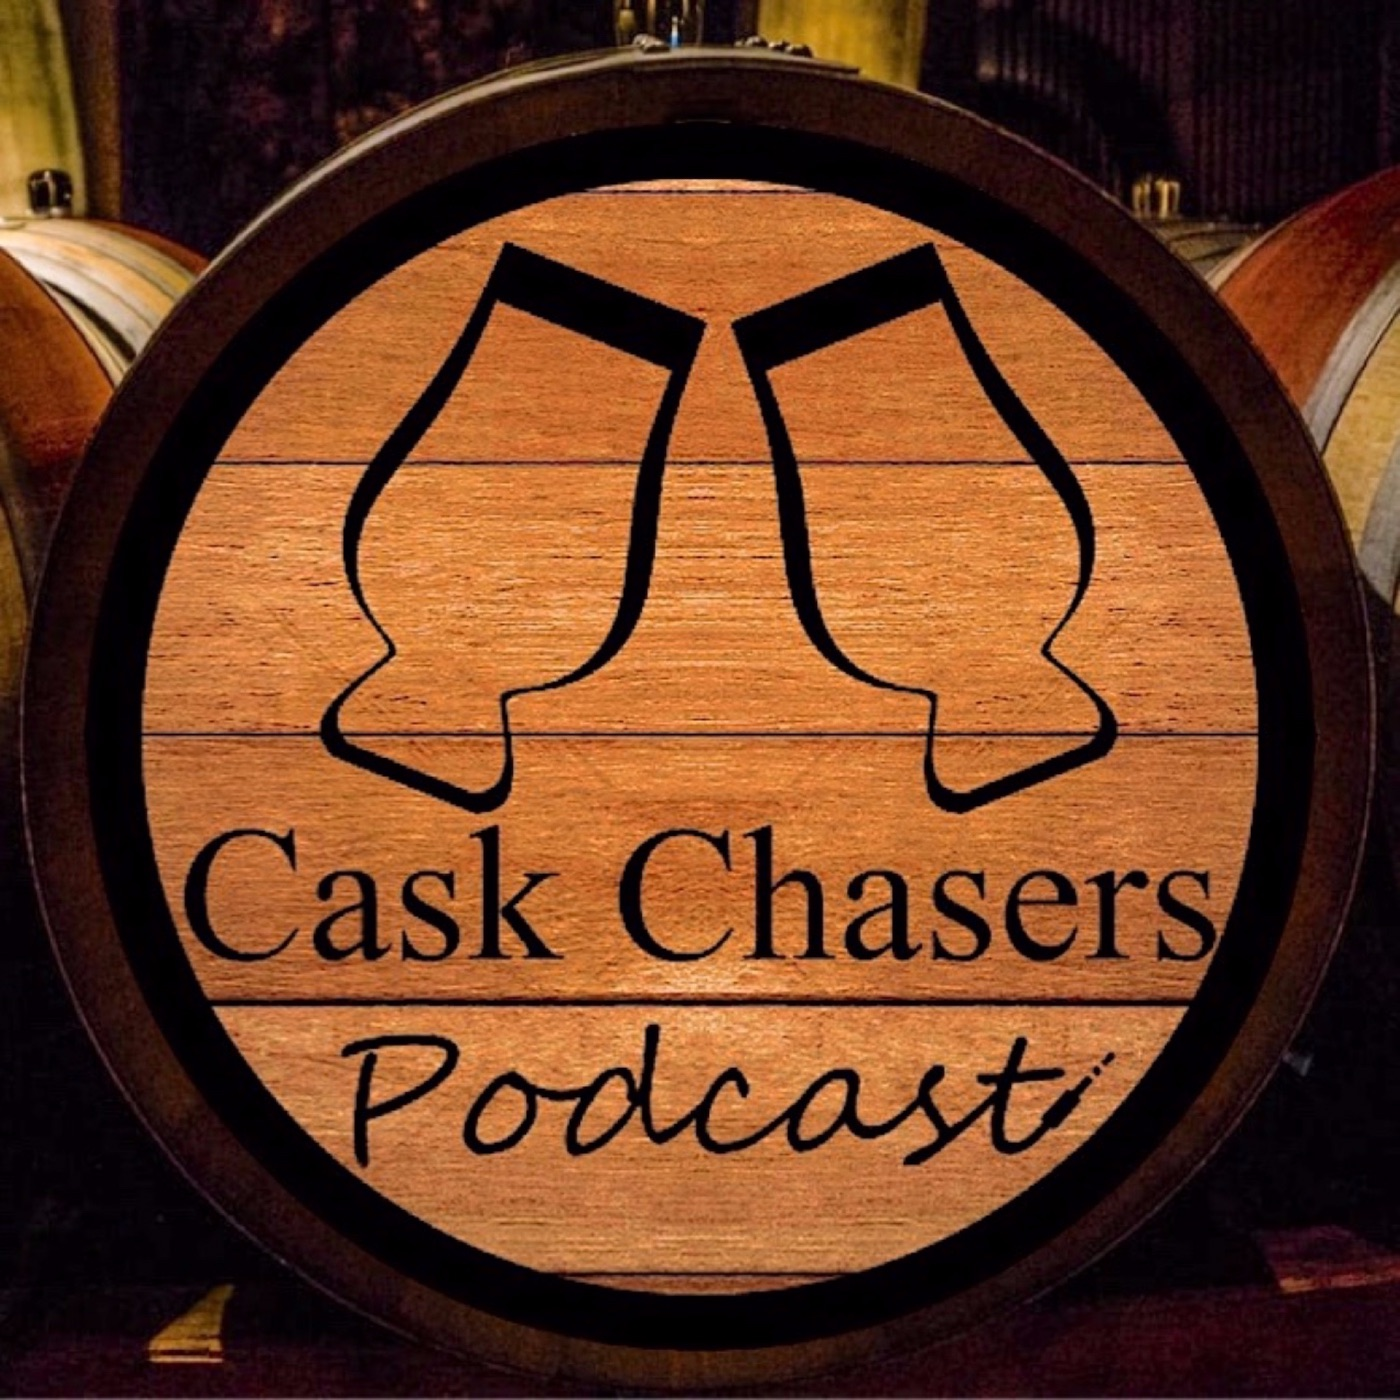 cask chasers logo